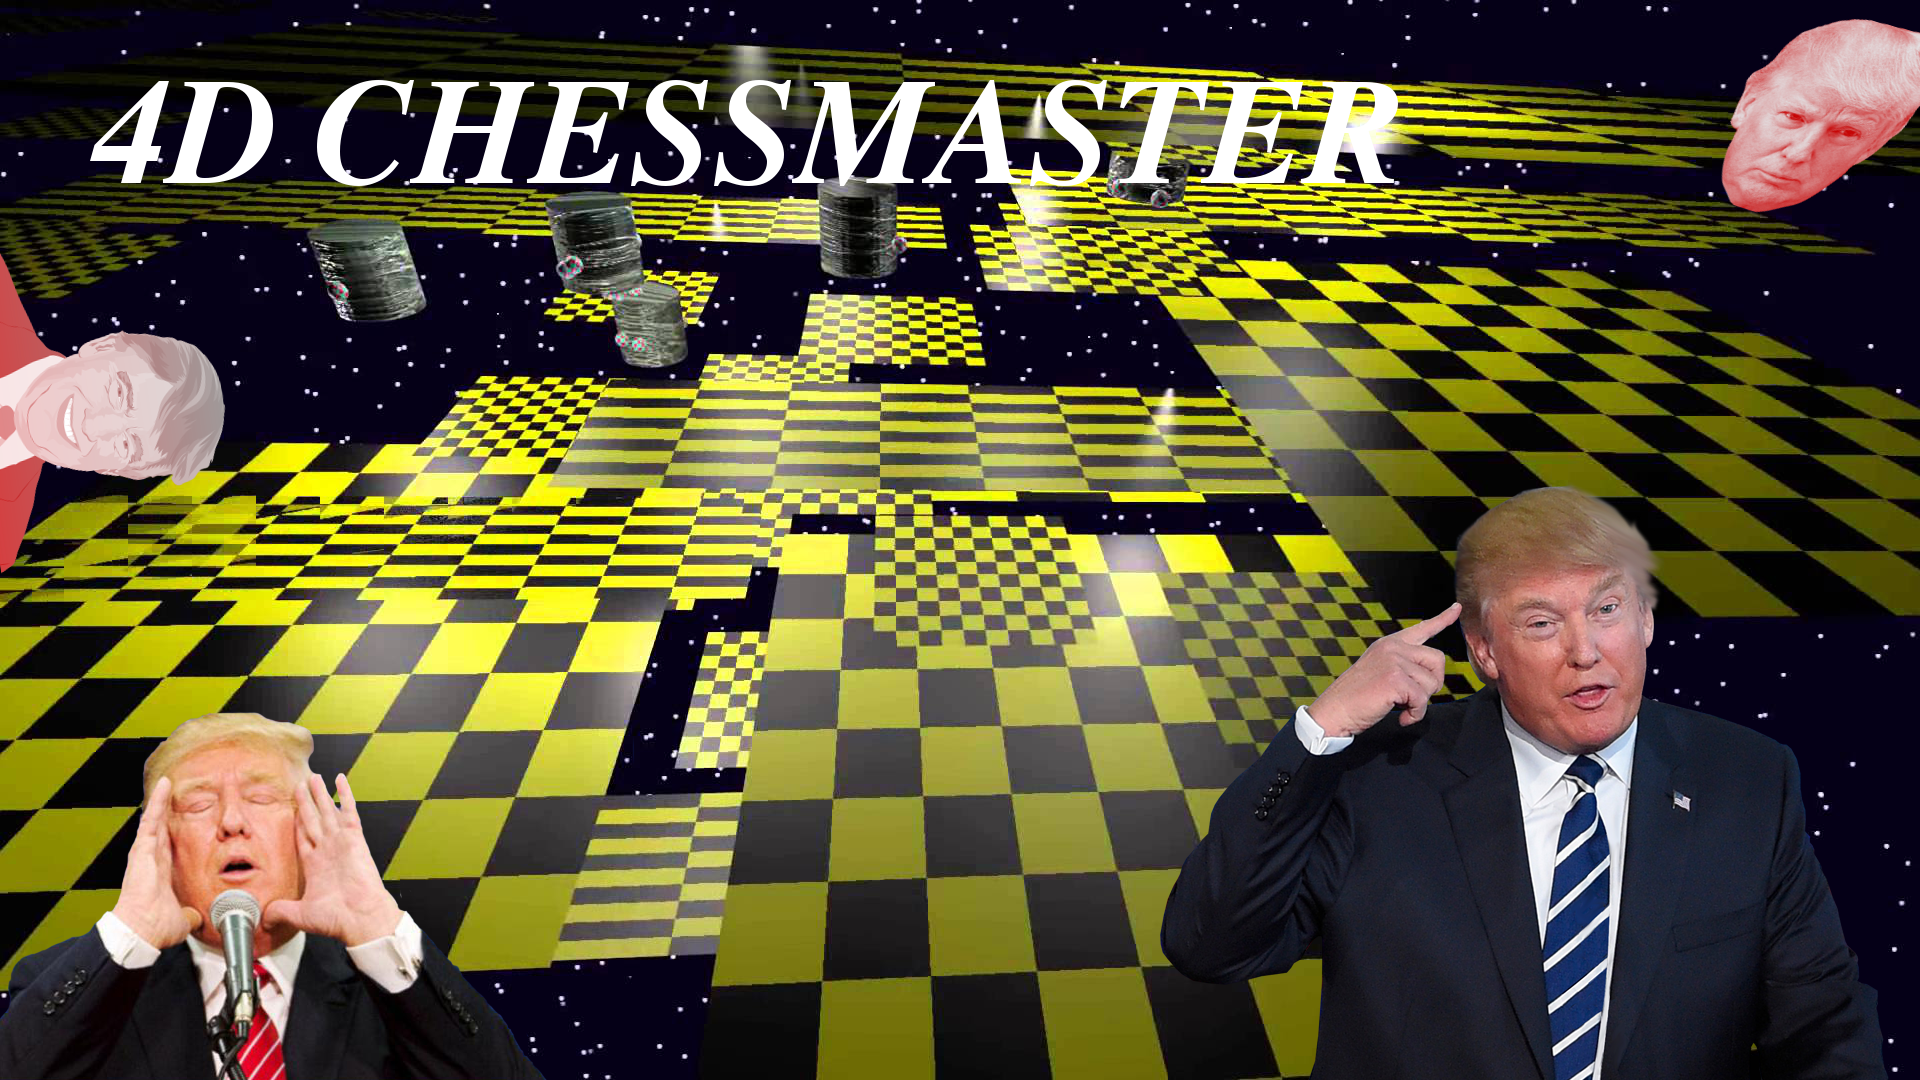 4d chess master | Trump Is Playing 4D Chess | Know Your Meme